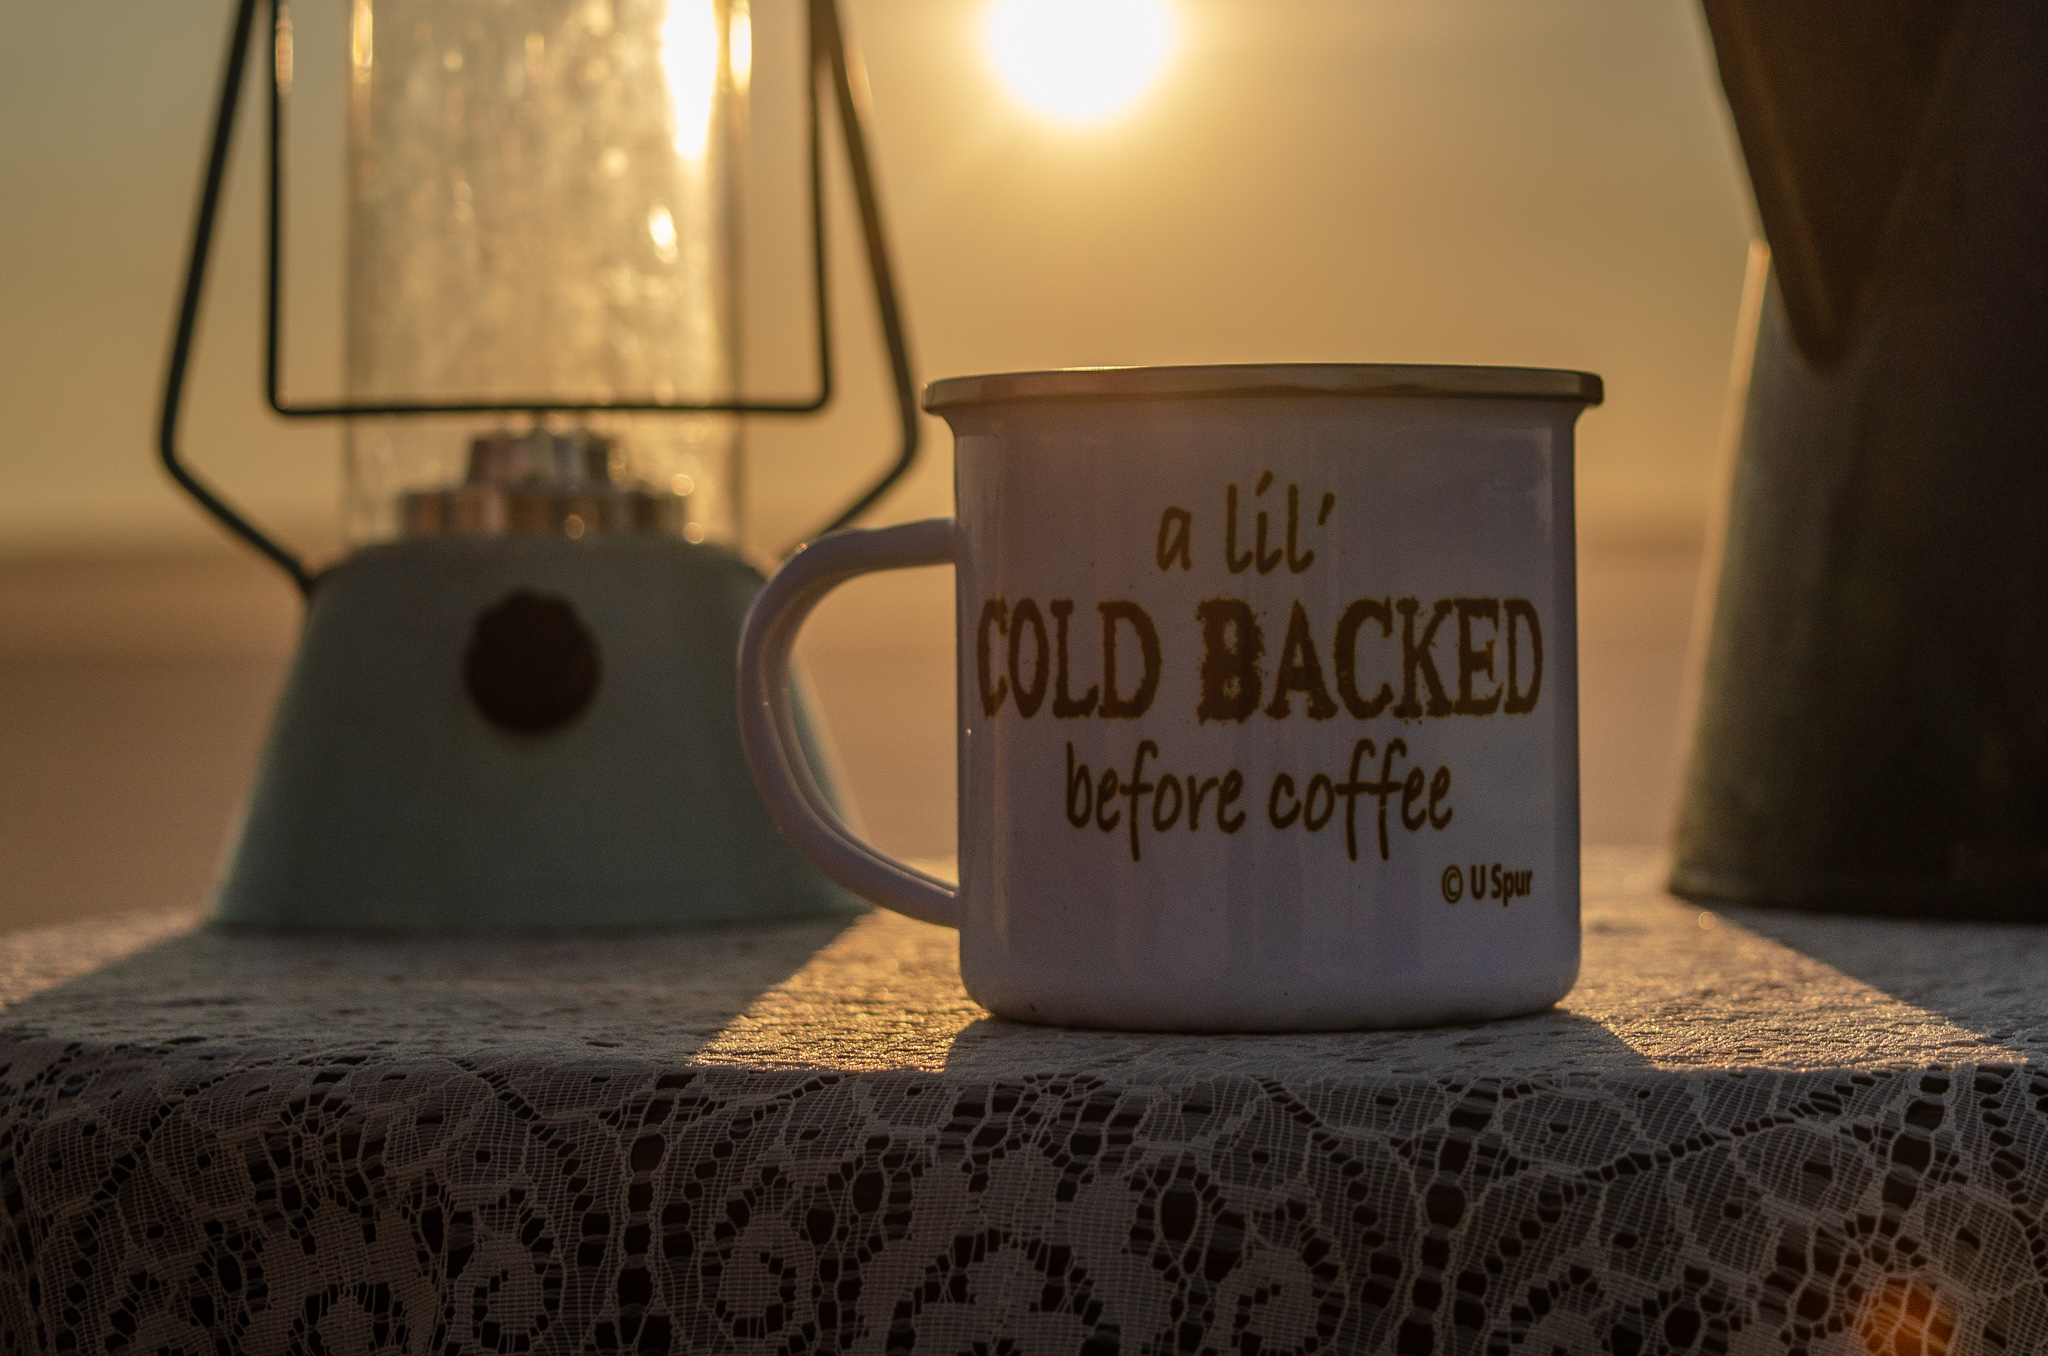 Product shot at sunrise on the Alvord Desert, featuring an enamel camp mug by U-Spur. If only we had some hot coffee on location!